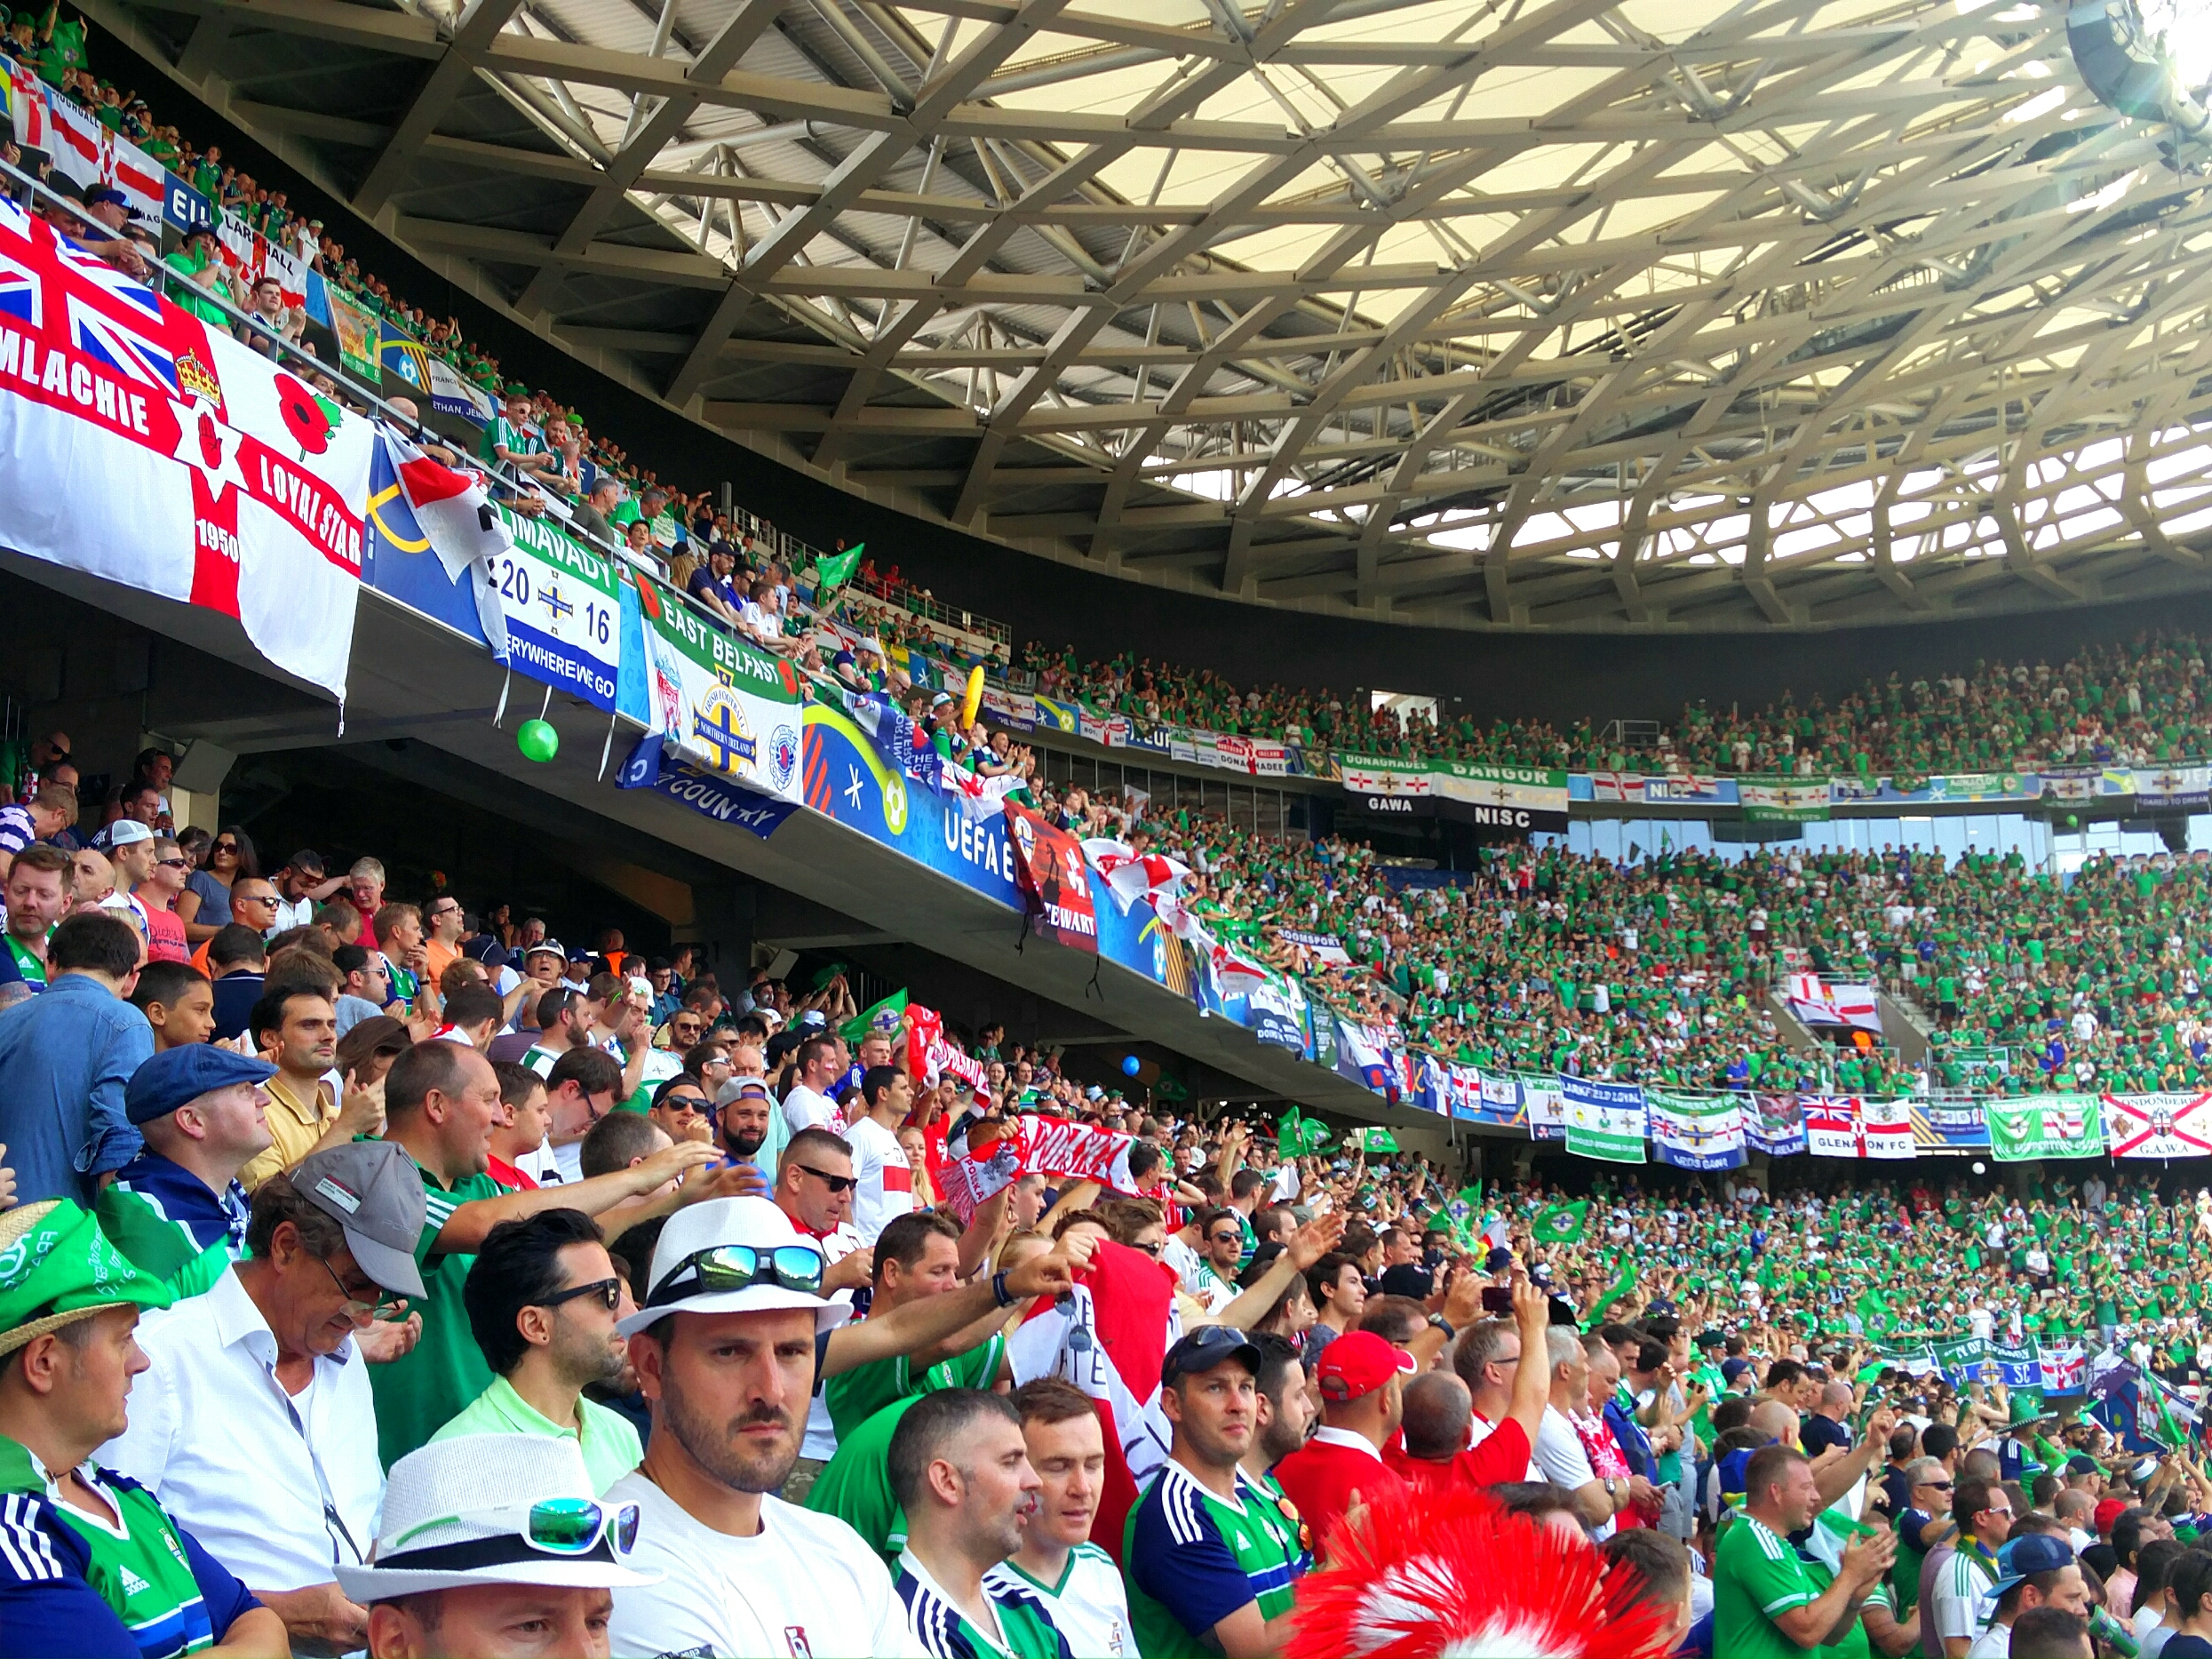 The sea of Norther Irish green taking a third of the stadium.